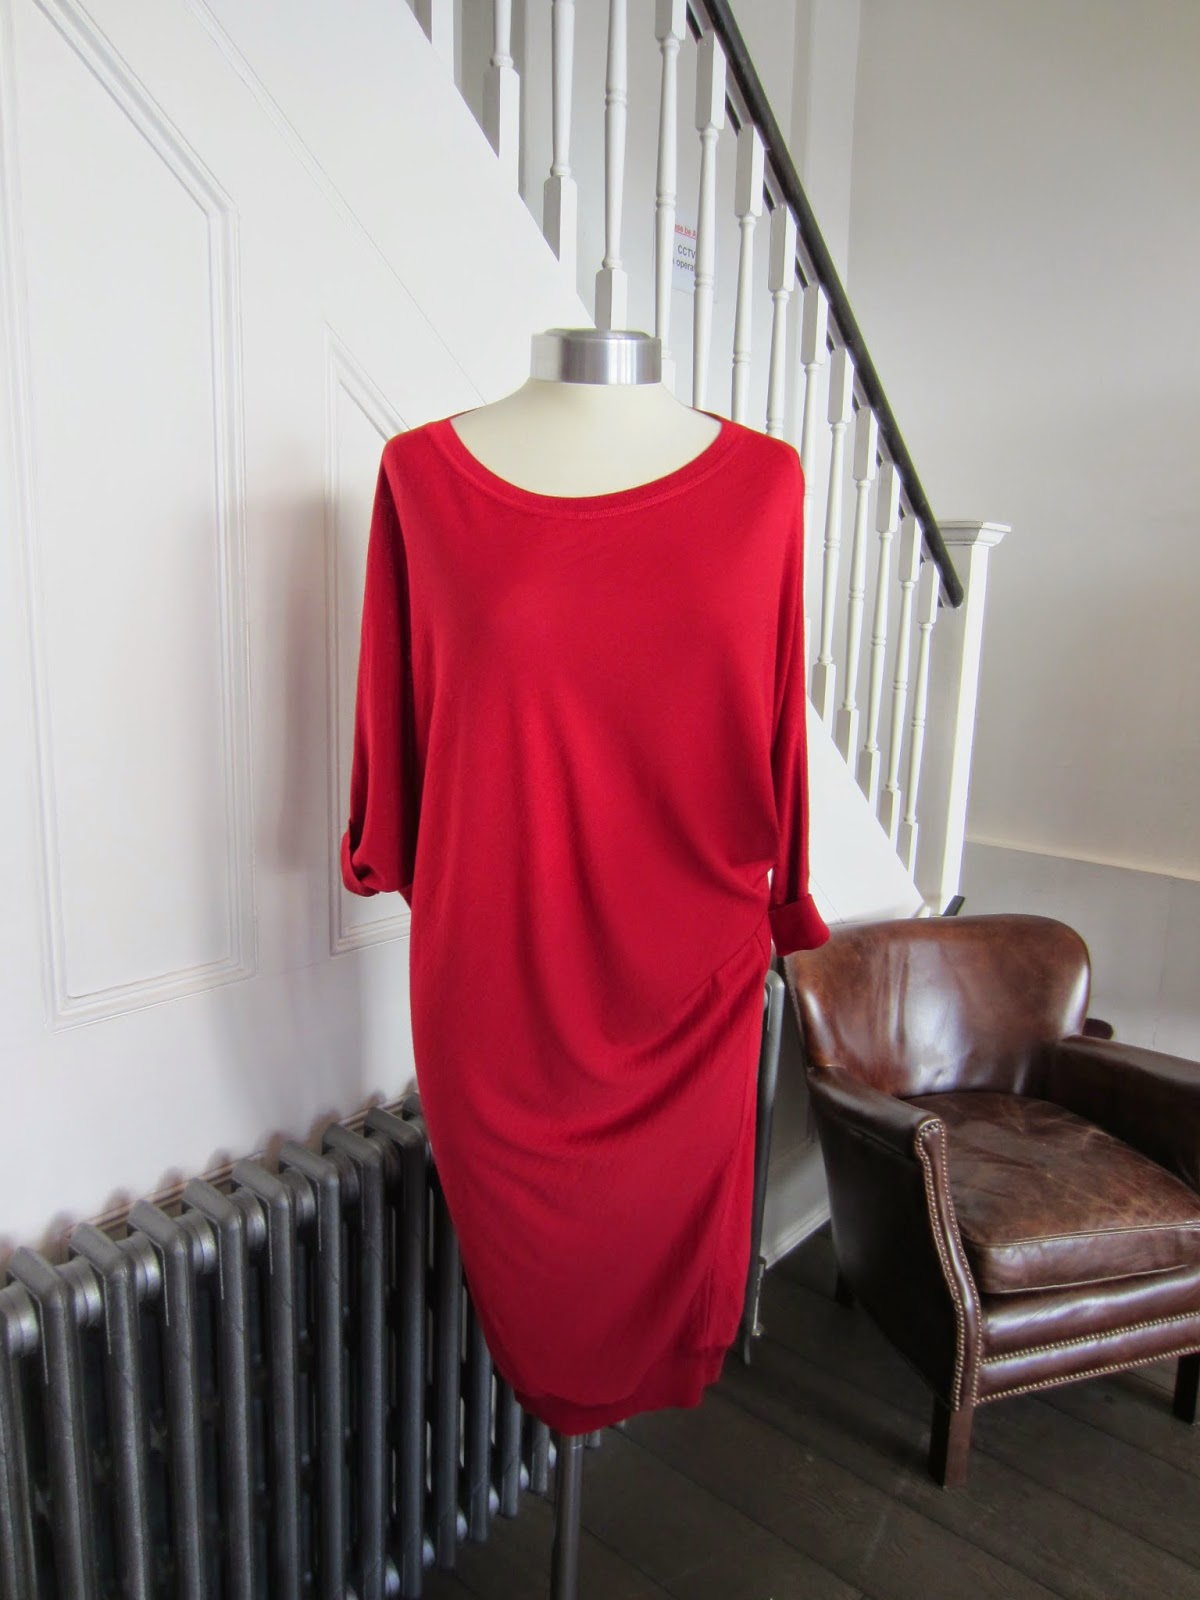 Alexander McQueen Red Sweater Dress